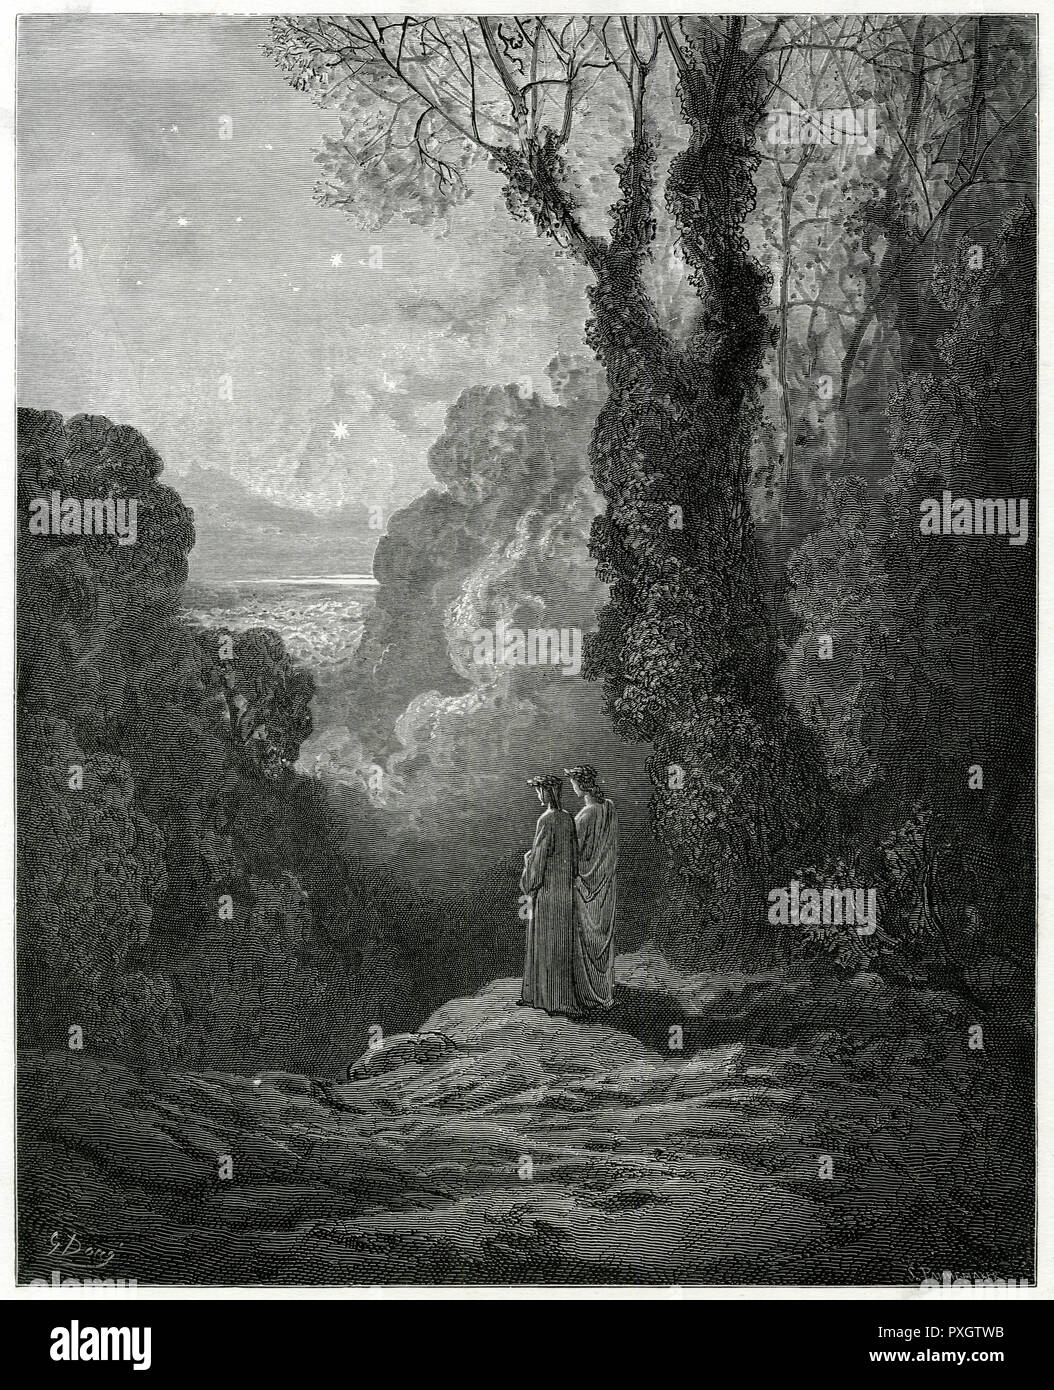 Dante and Virgil emerge from infernal regions just before dawn and are greeted by the radiant constellation of Venus in the night sky.      Date: First published: 1307-21? - Stock Image